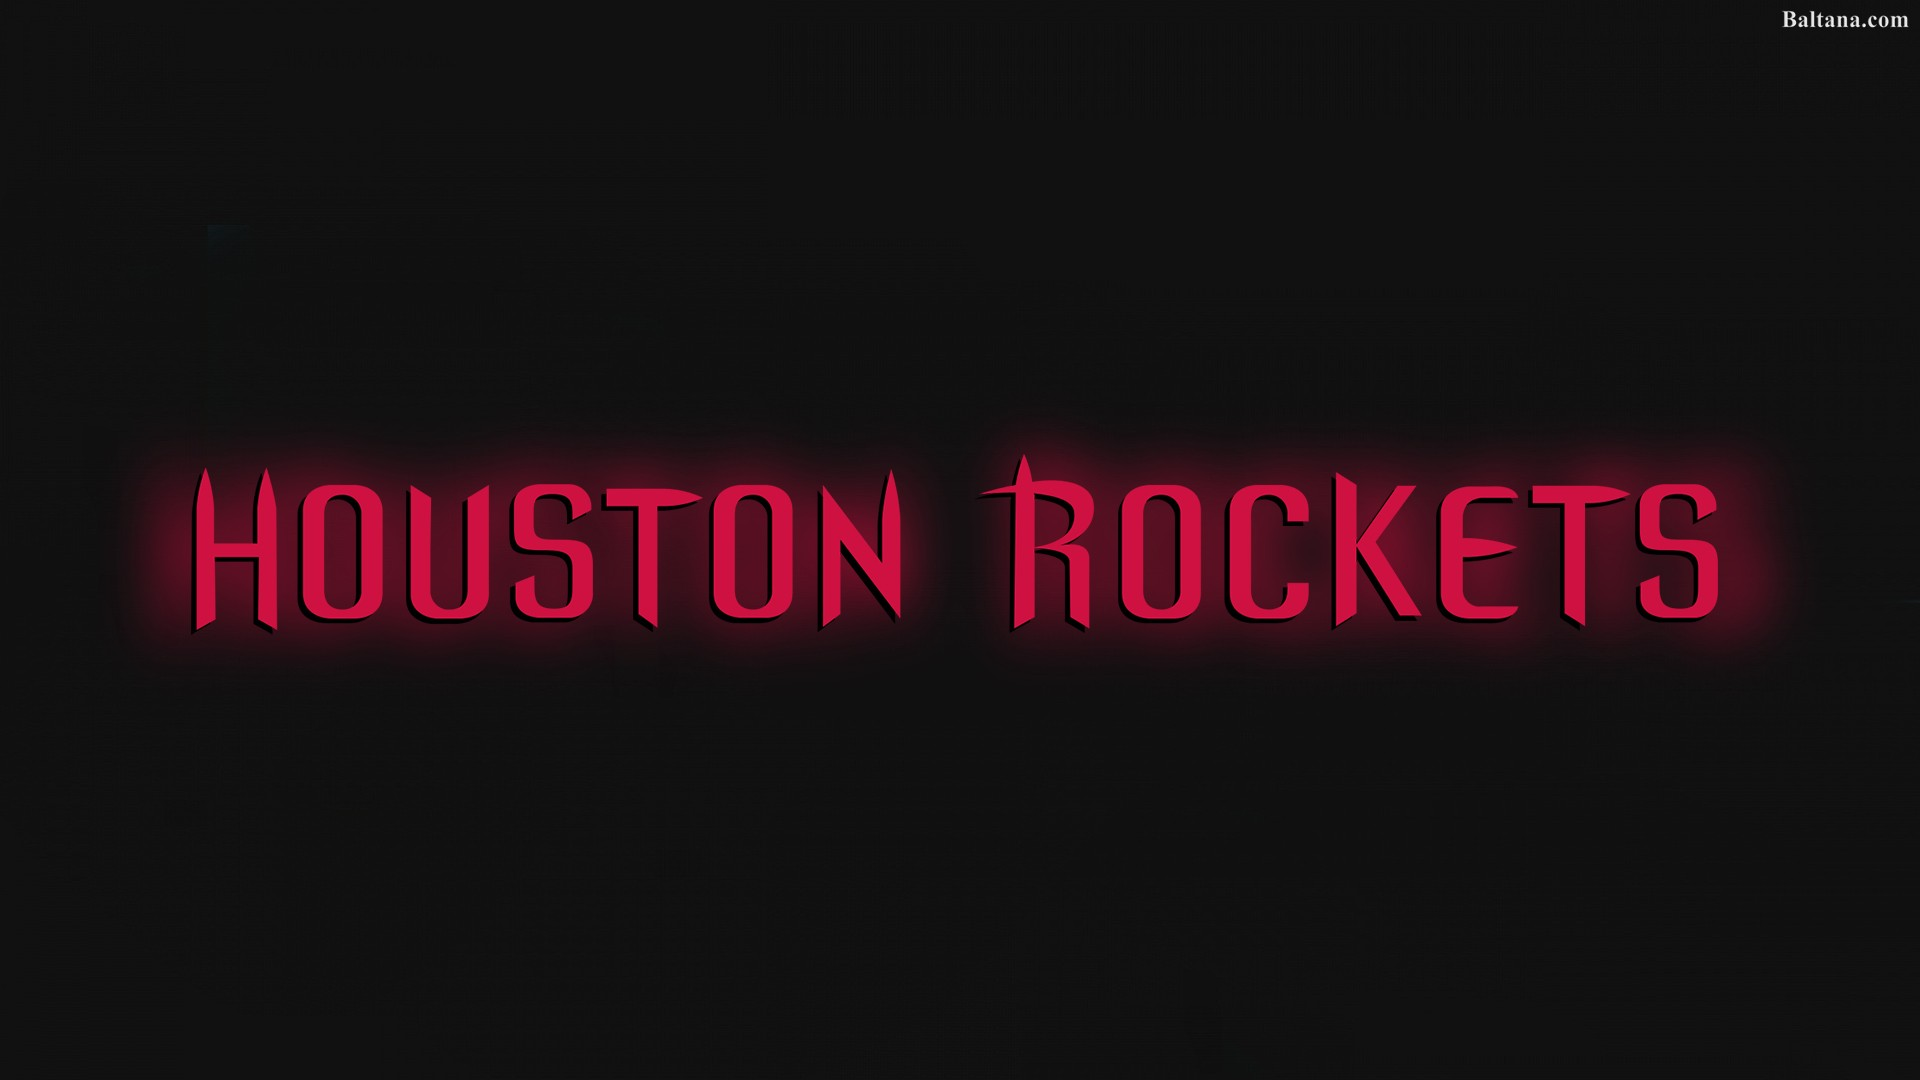 Houston Rockets Desktop Wallpaper - Houston Rockets , HD Wallpaper & Backgrounds